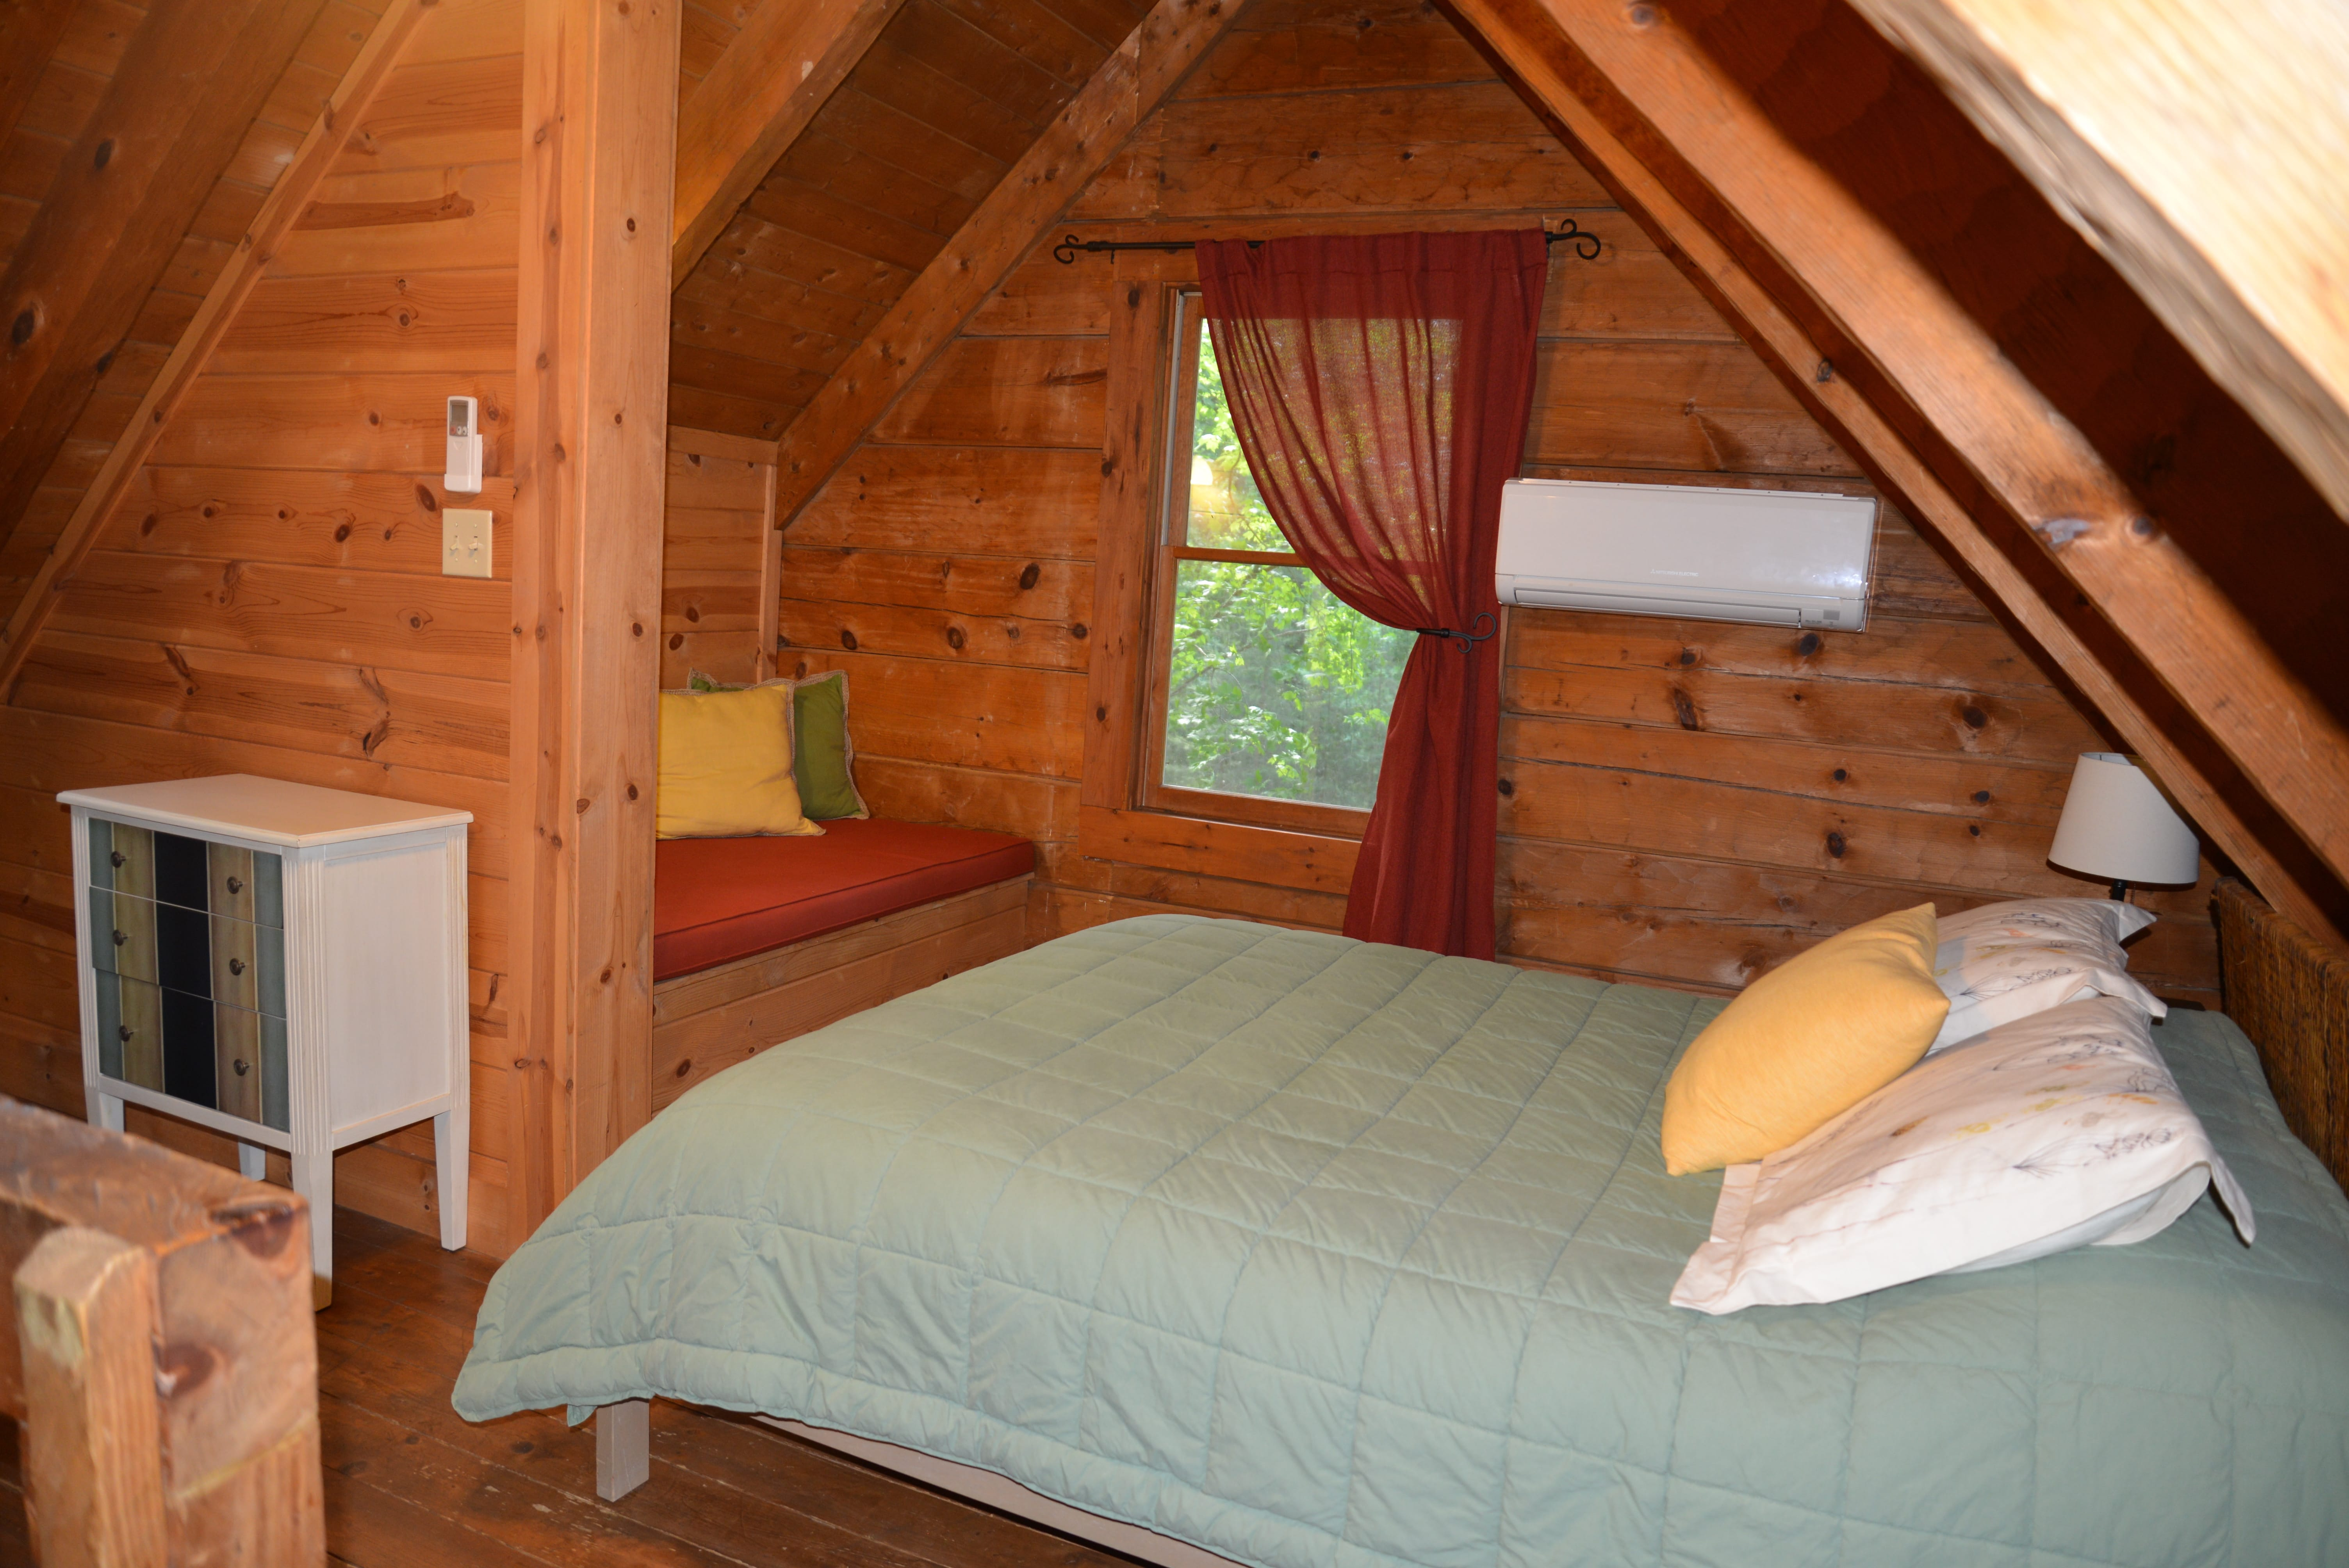 valley three has club property mountain adirondack pin for heart cabin rental lake cabins shenandoah on they the rentals